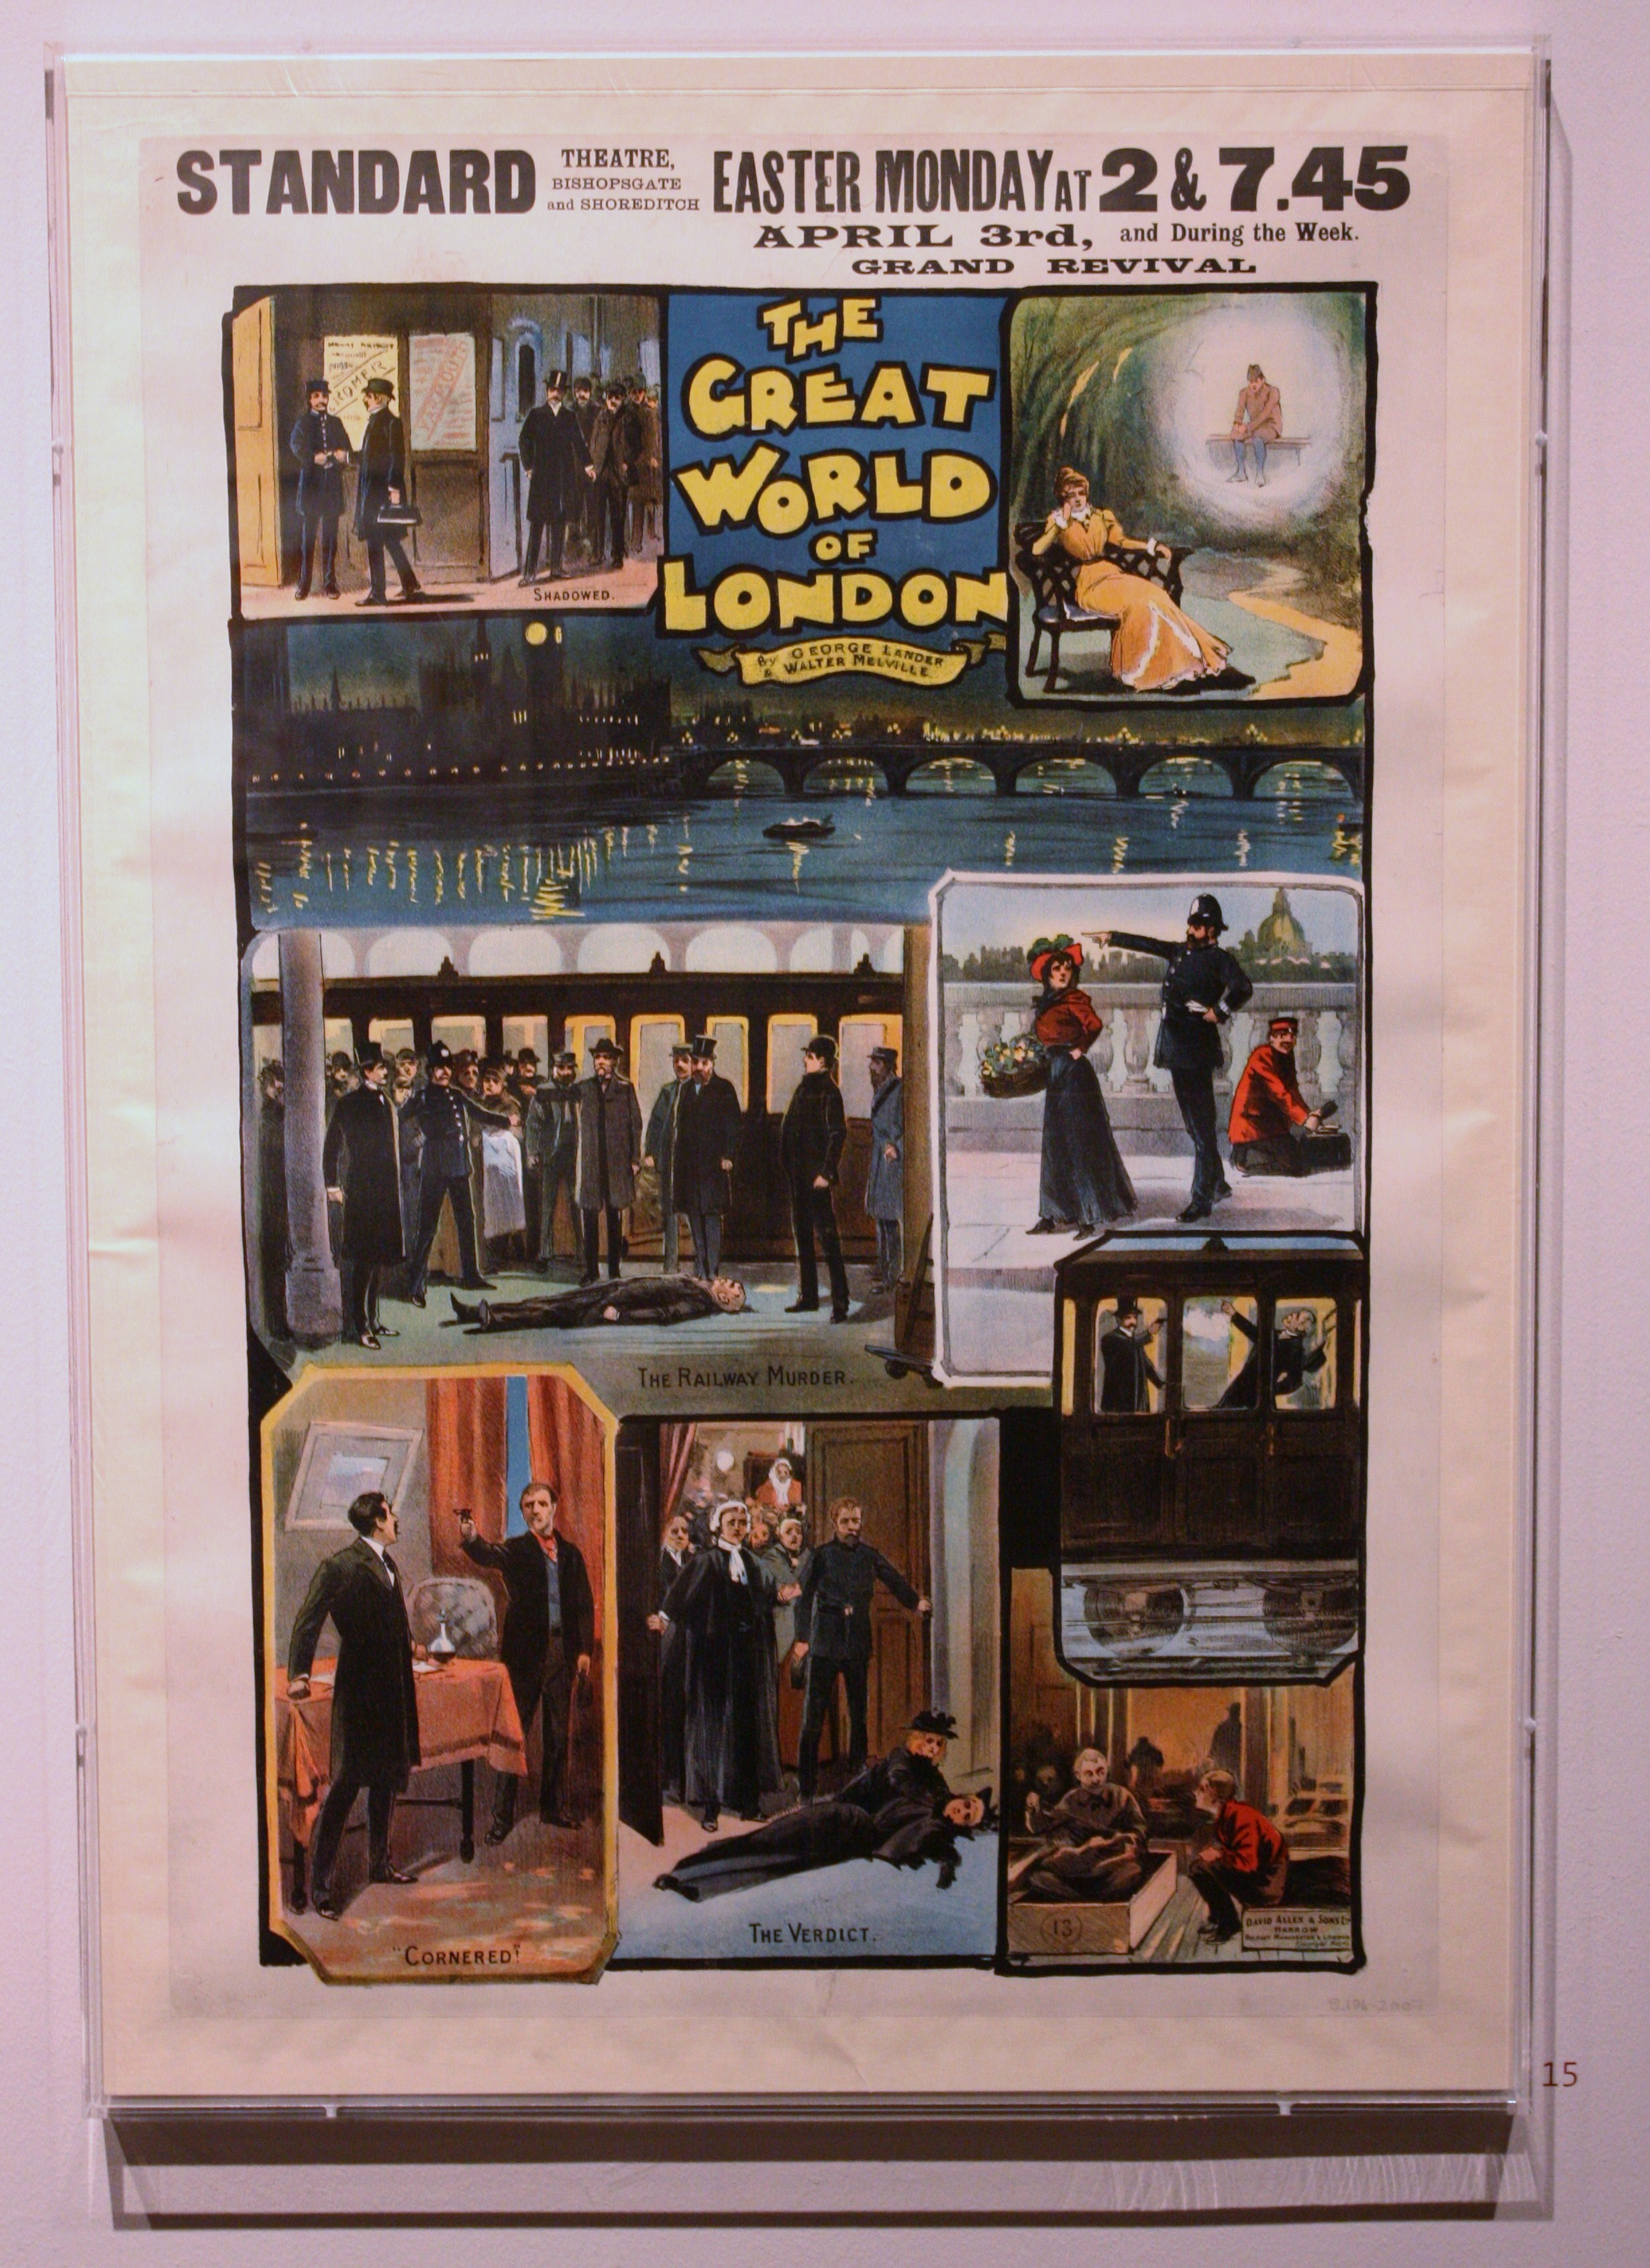 Poster For The Great World Of London At The Standard